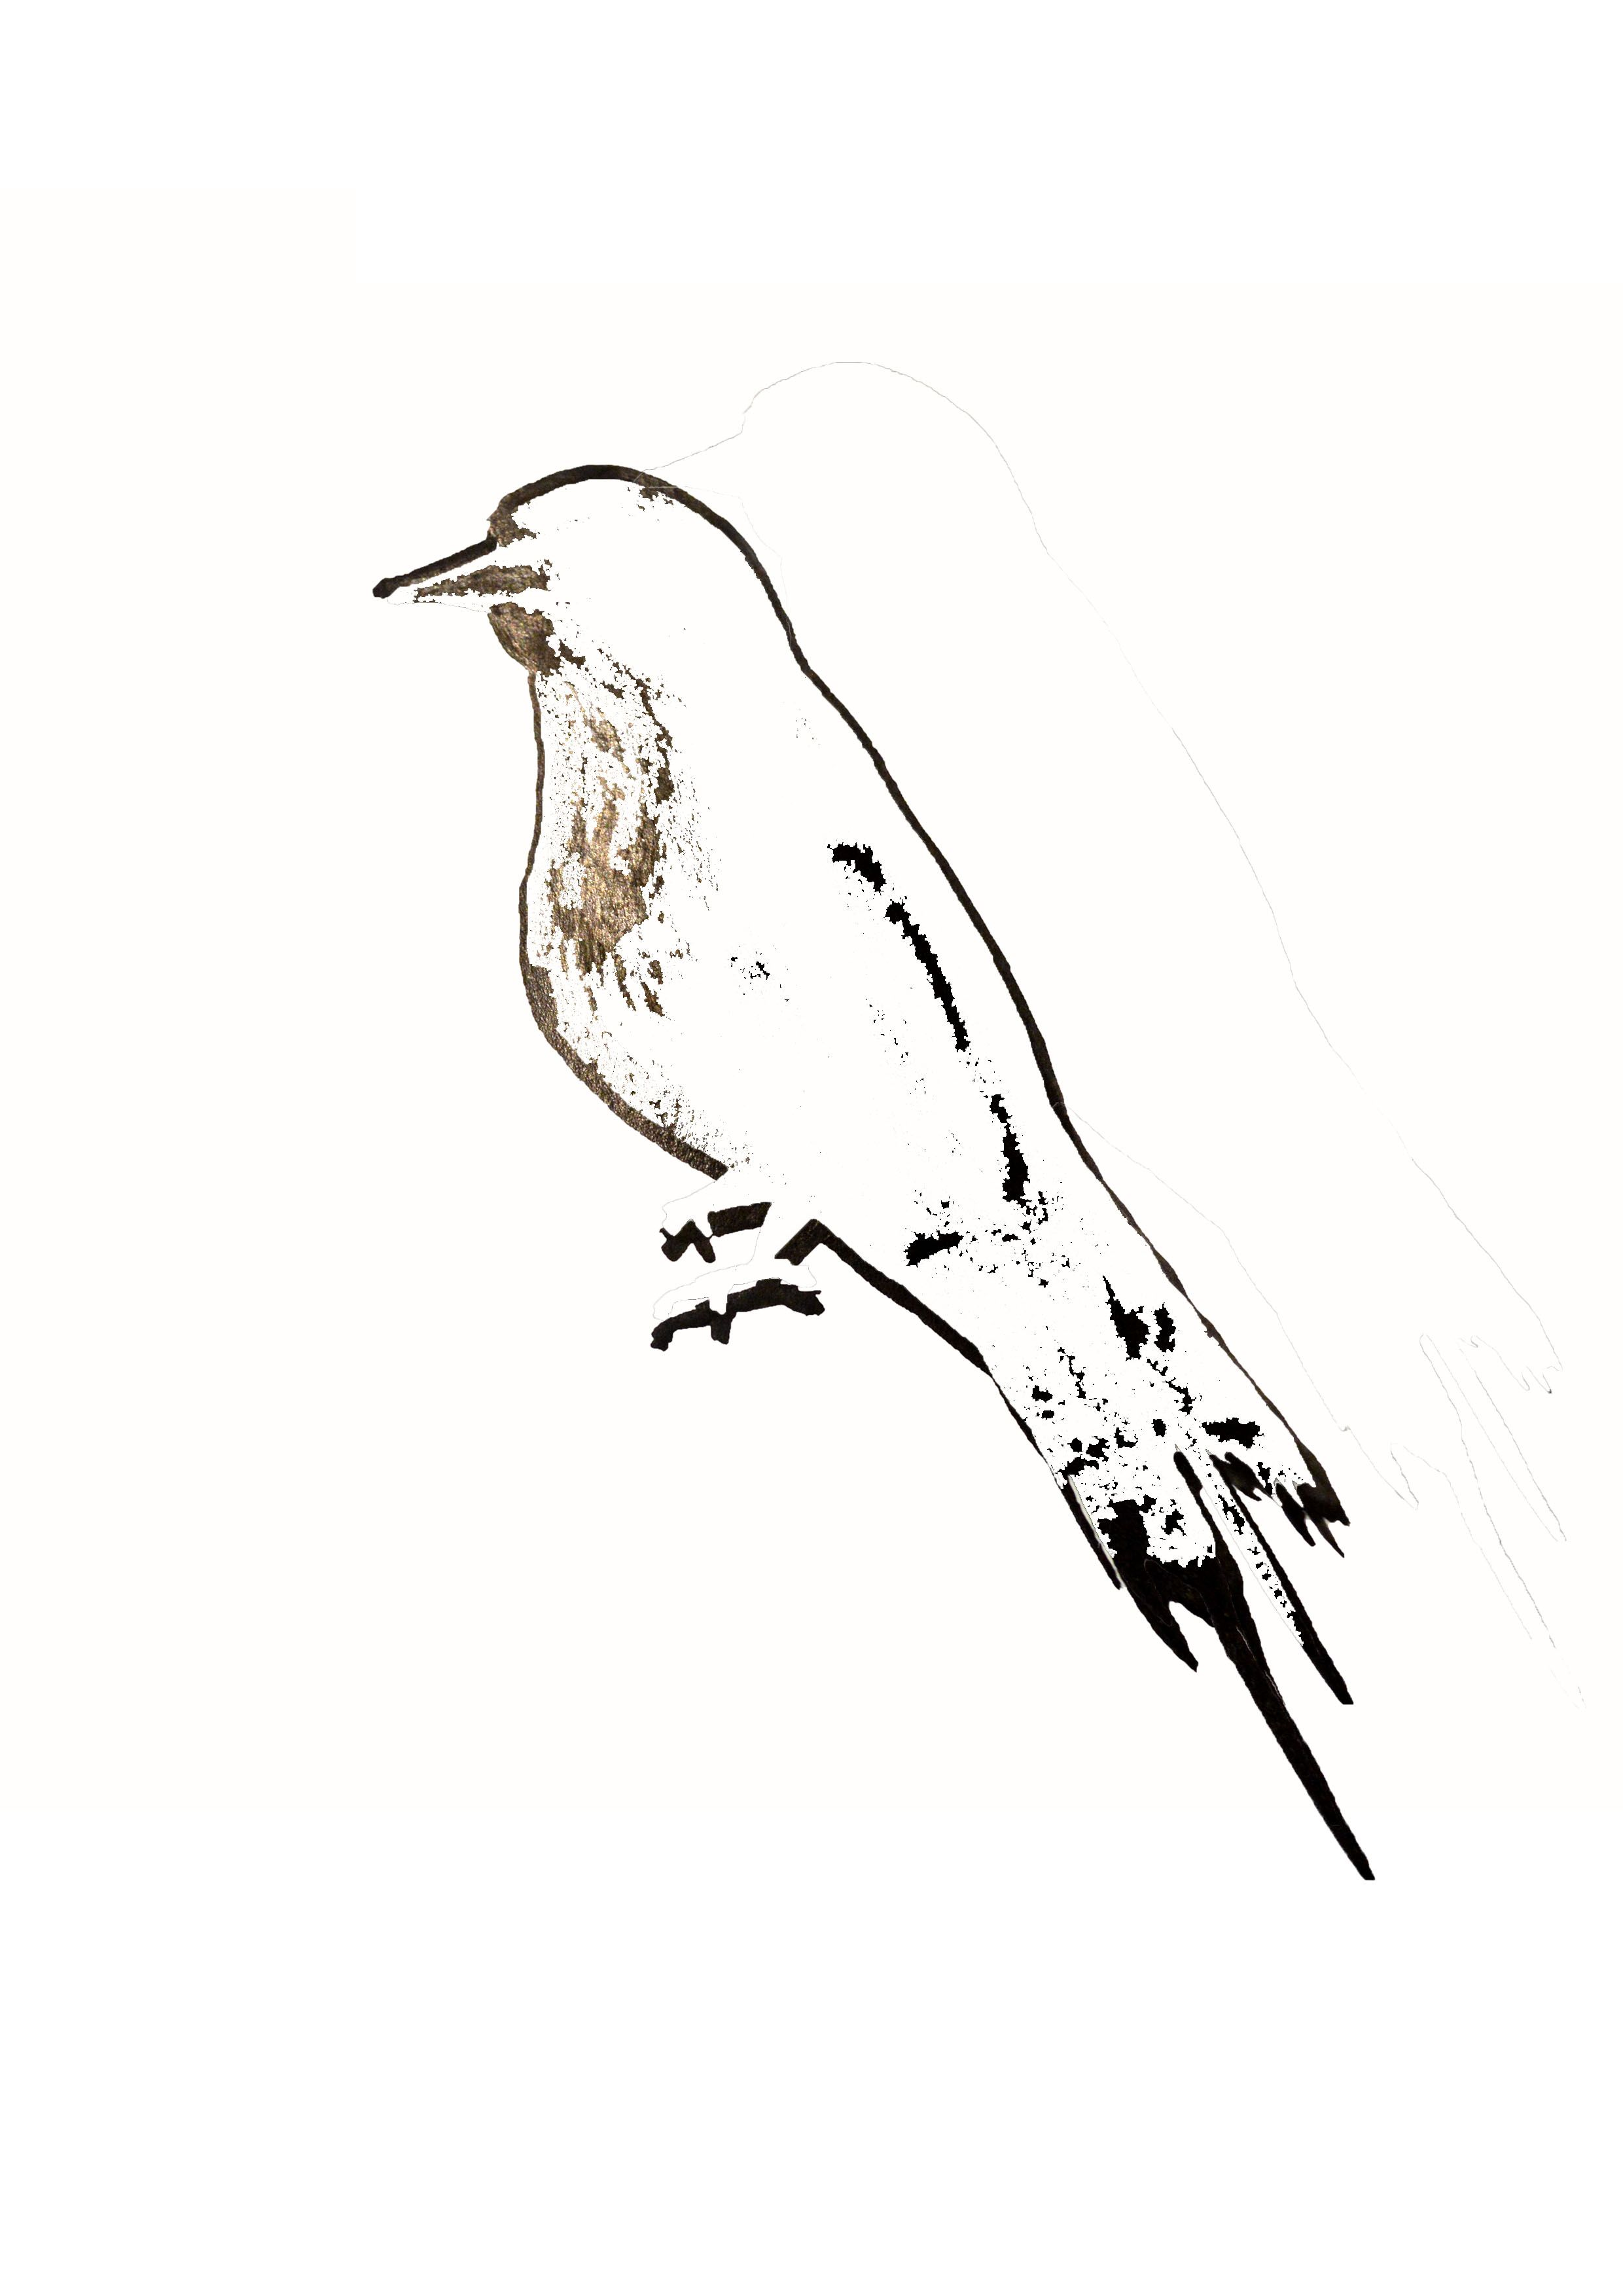 The Mockingbird. The addition of the bird to my illustrations will be to symbolise the hiding meaning in the title, in that this type of creature does no wrong, it simply mimics the actions of another.